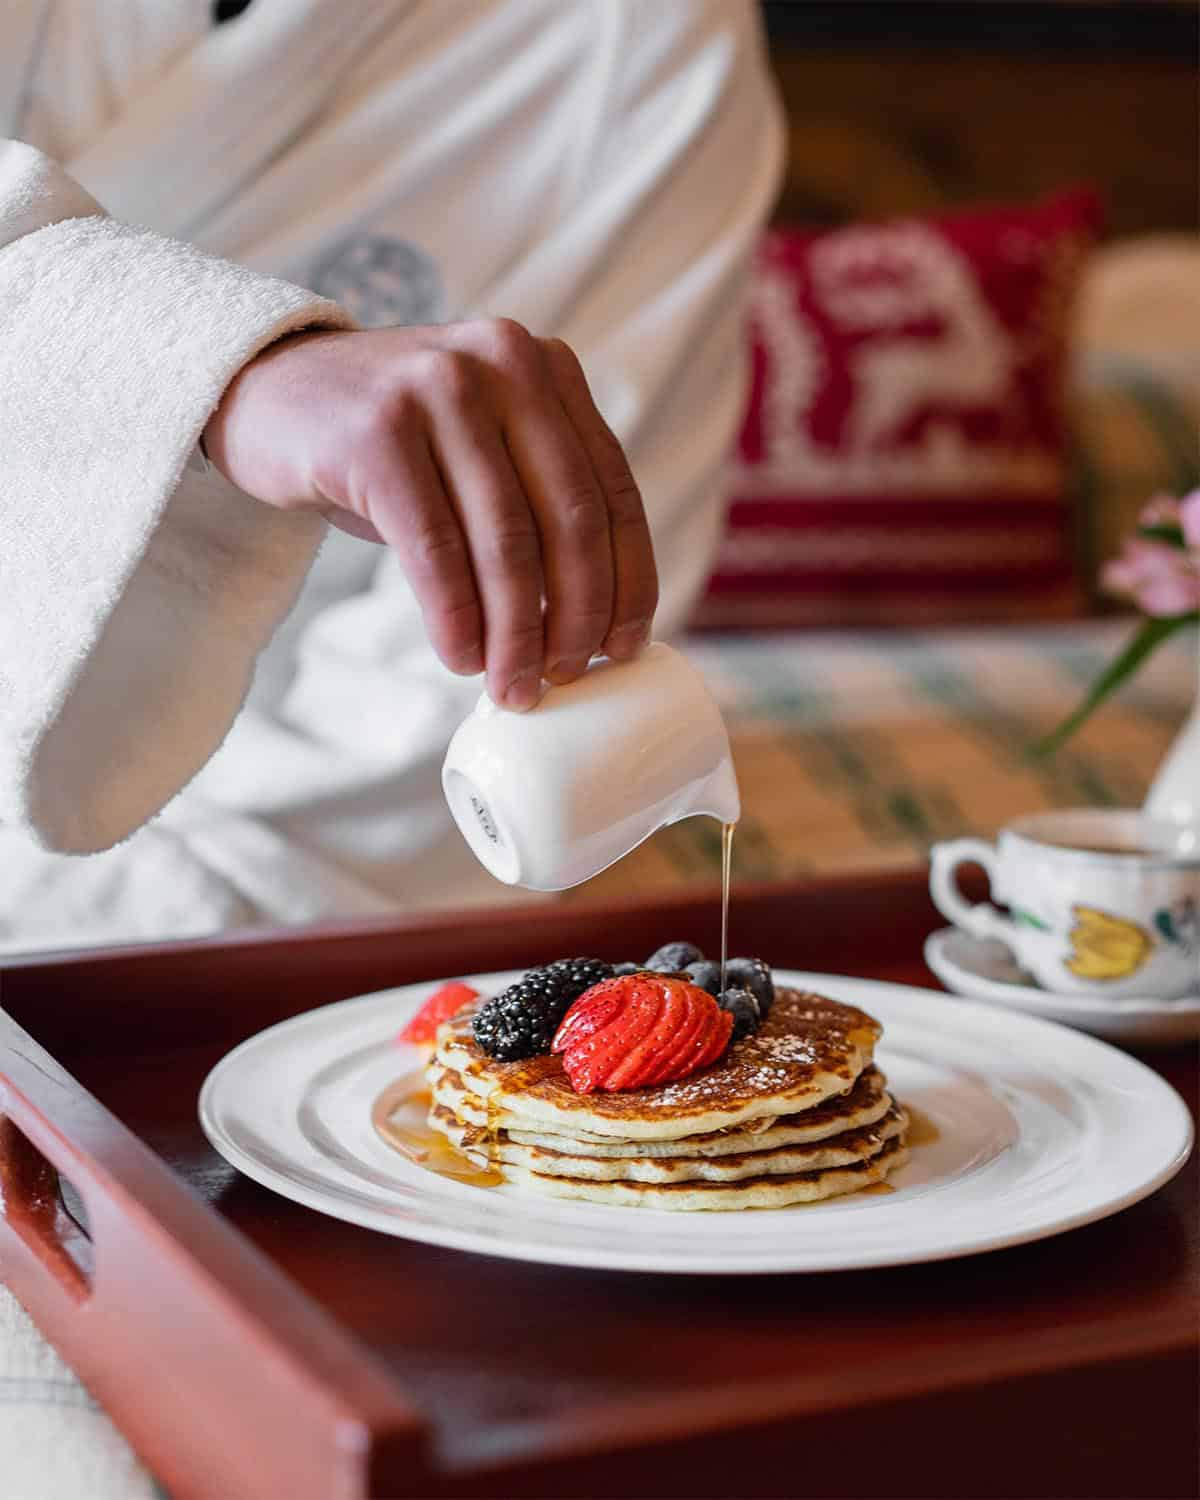 Person wearing bathroube pouring syrup over pancakes with fruit on tray on bed